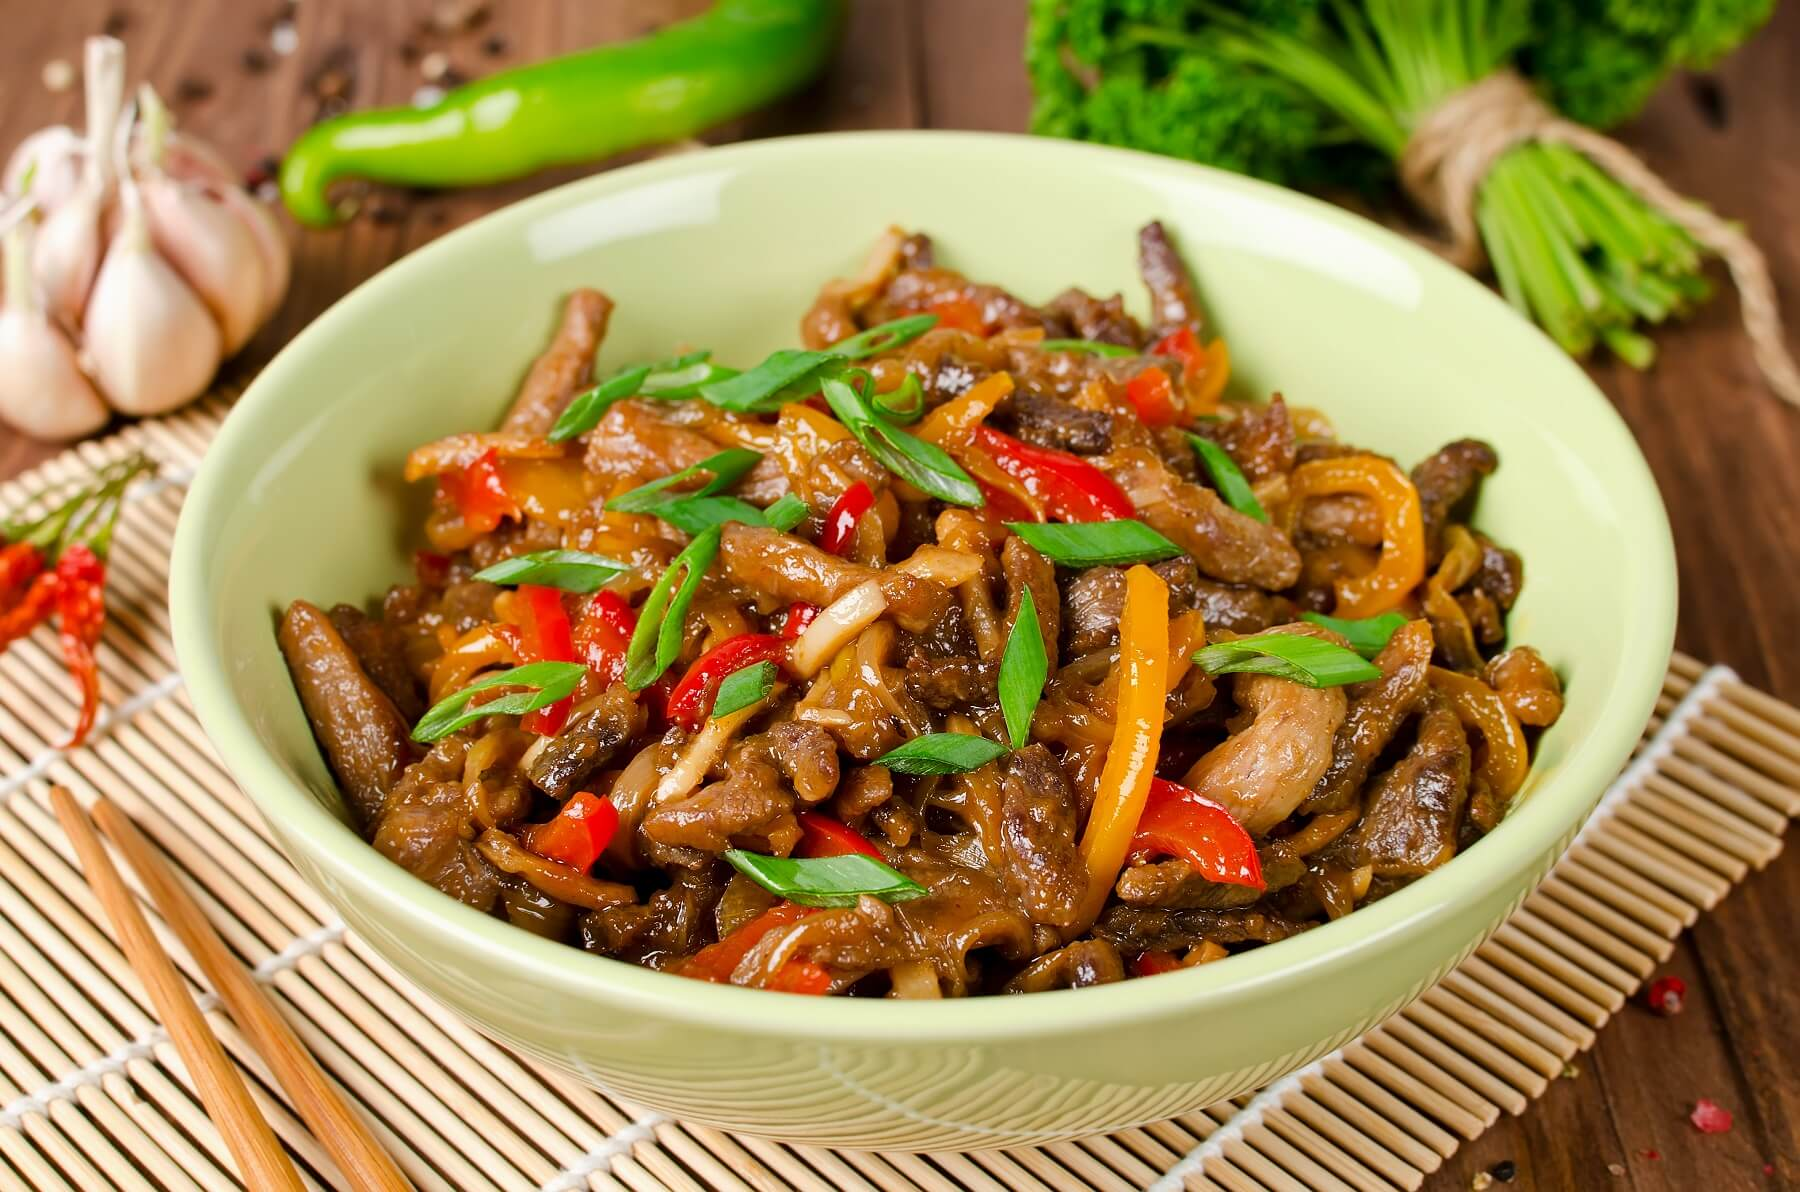 Stir Fried Pork With Ginger Recipe